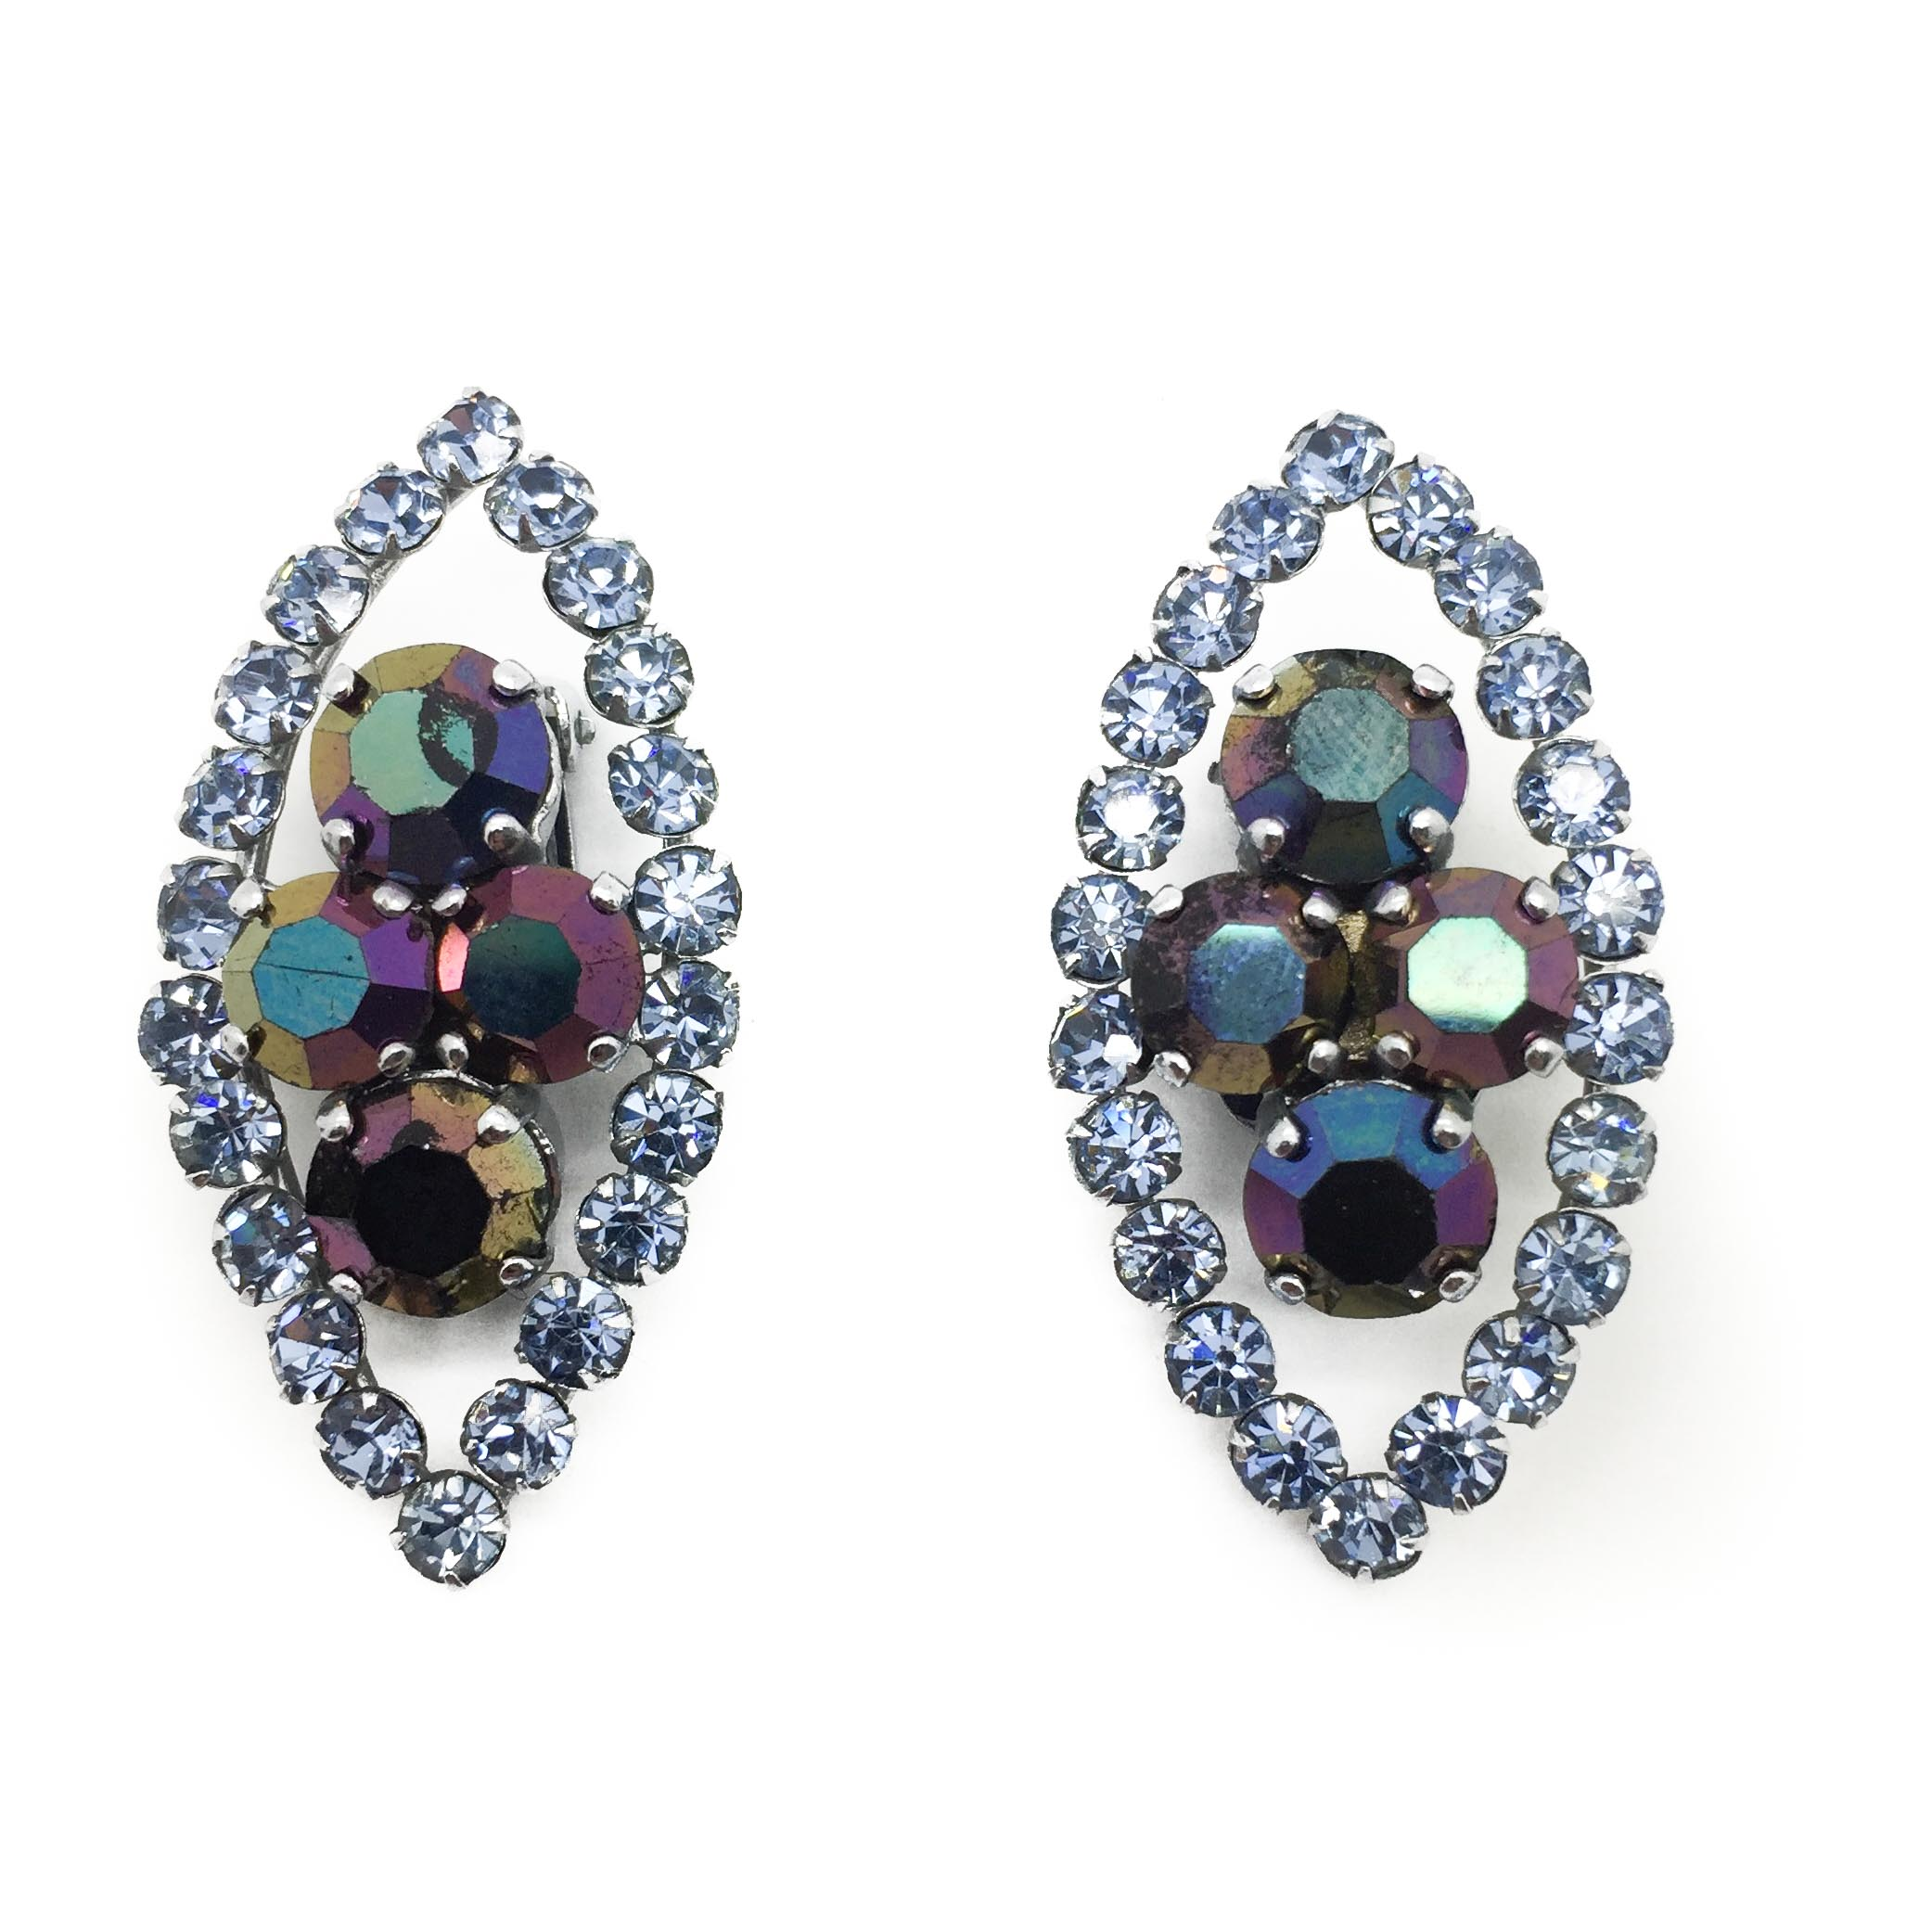 Dior 1950s Earrings, vintage dior, dior earrings, christian dior earrings, francesca cumani aintree